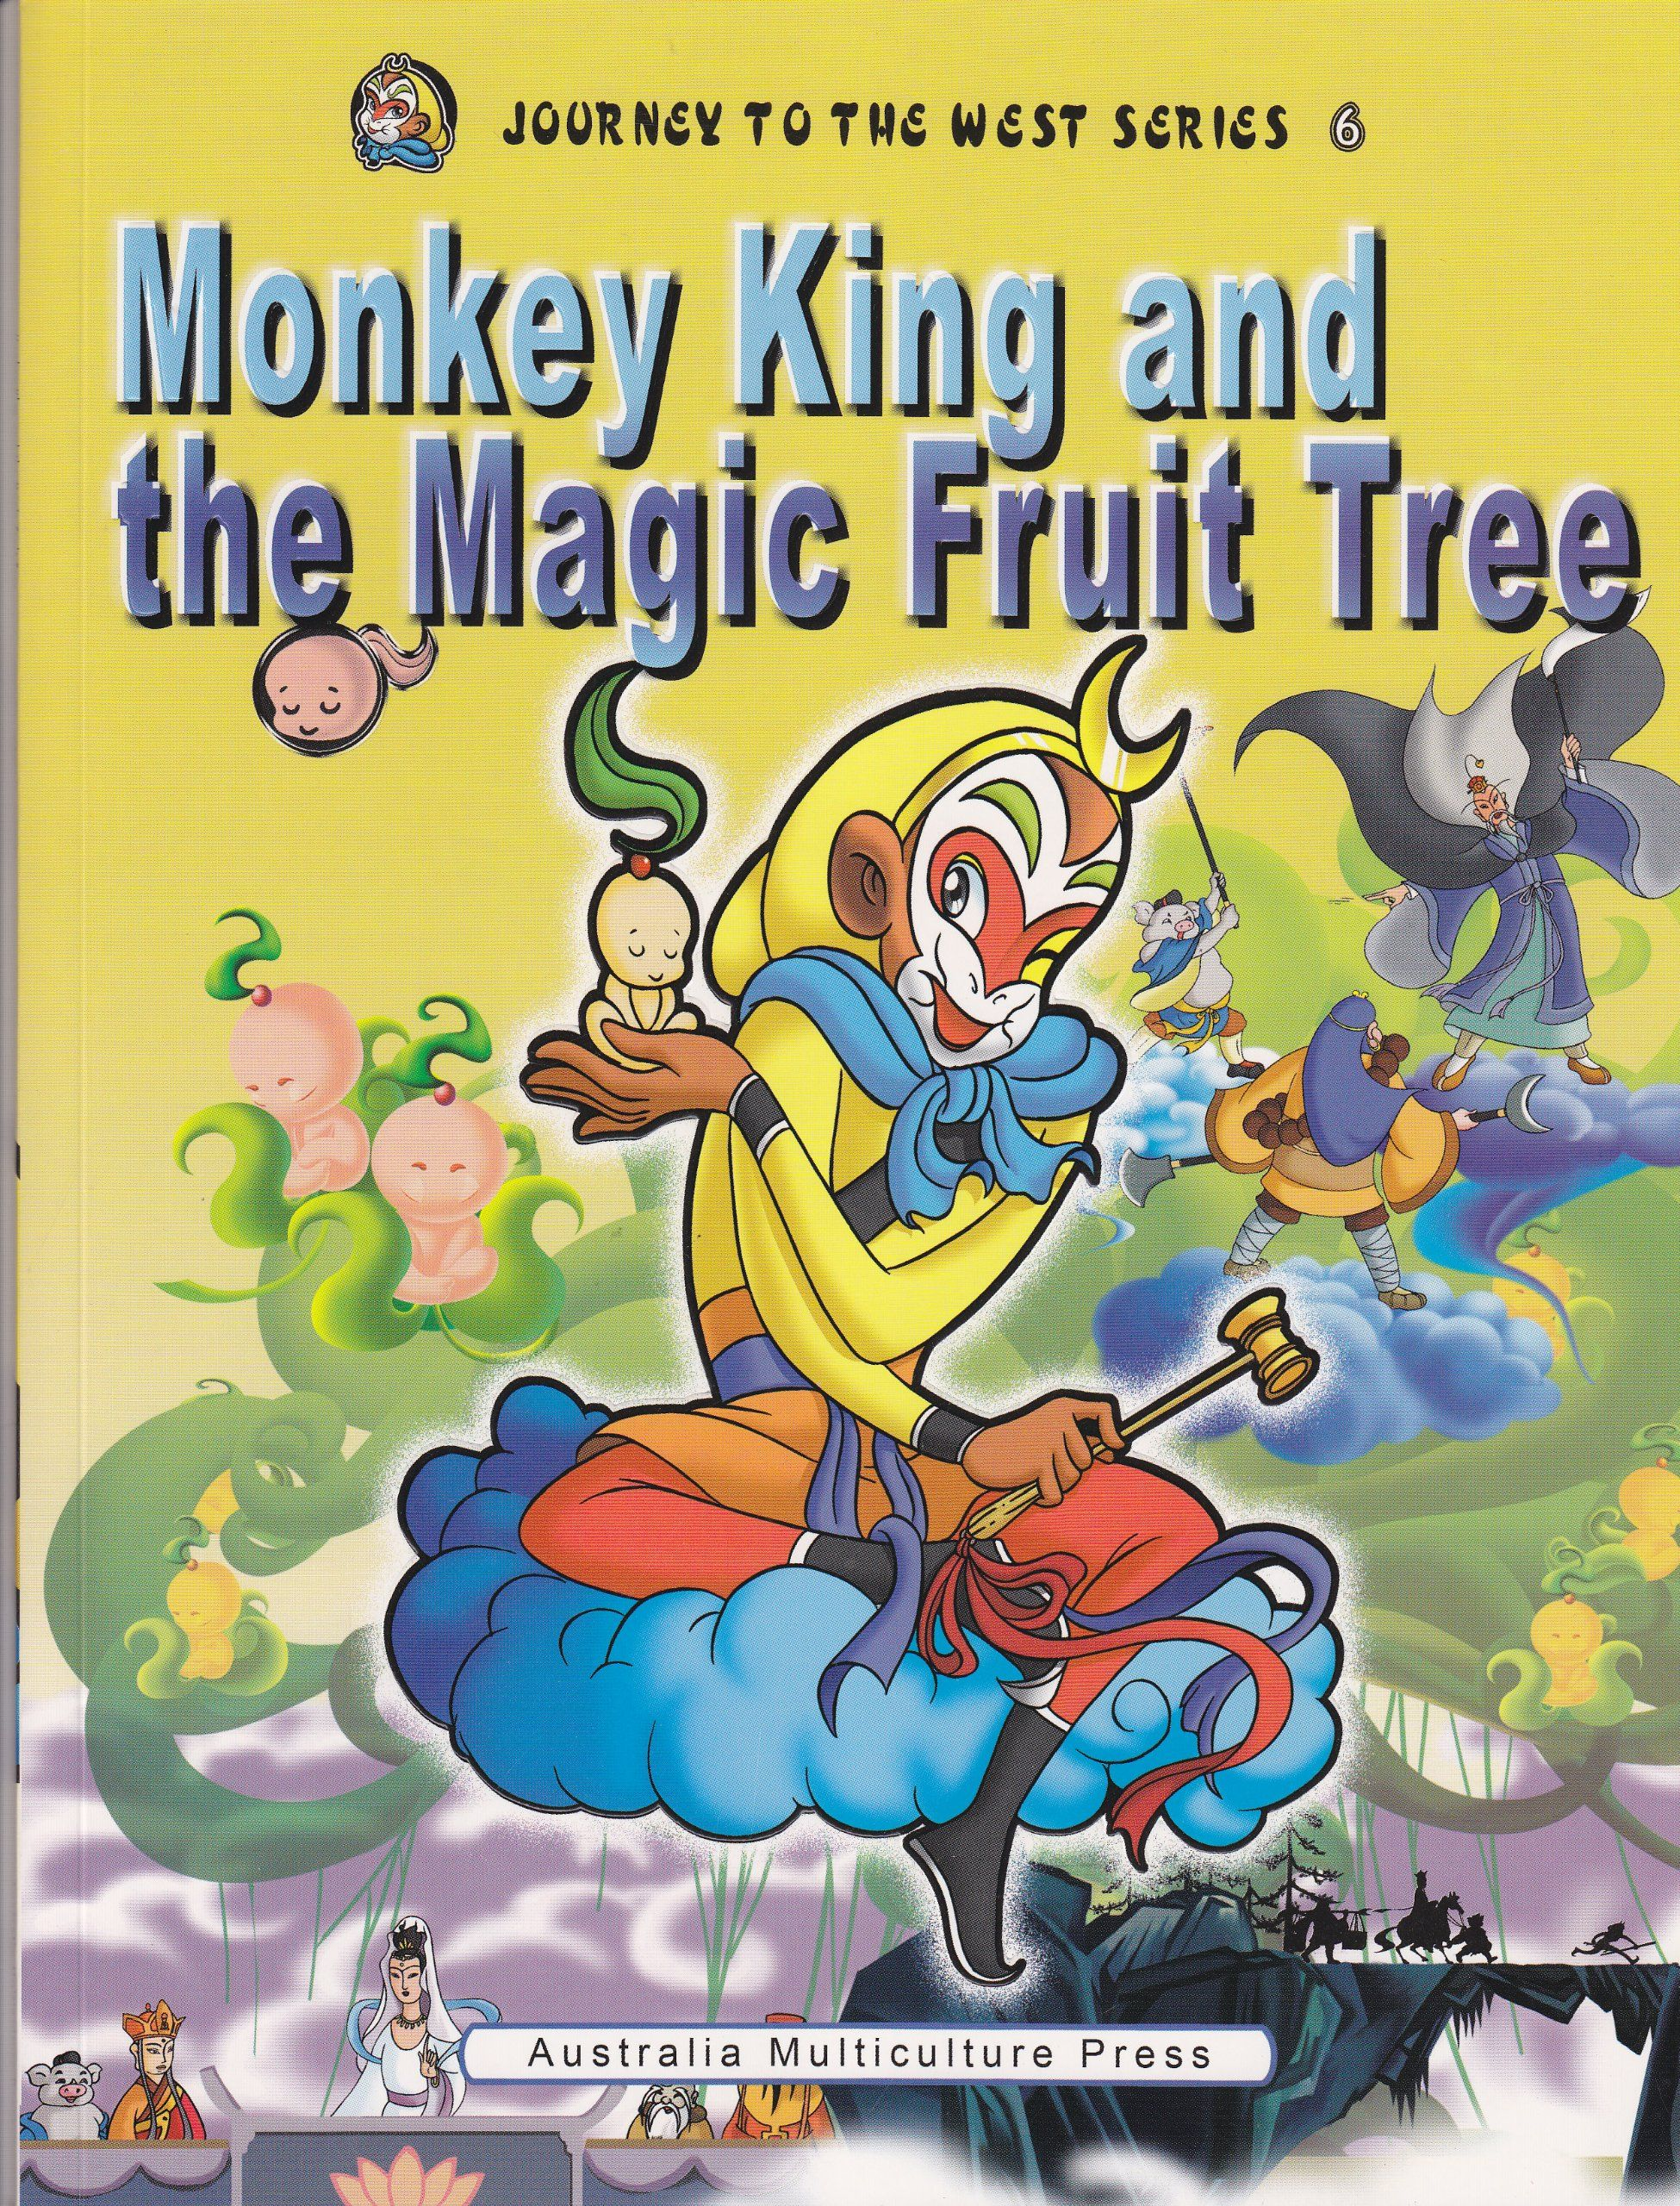 Monkey King And The Magic Fruit Tree Journey To The West Series 6 English Version Price 10 0 Monkey King Journey To The West Monkey